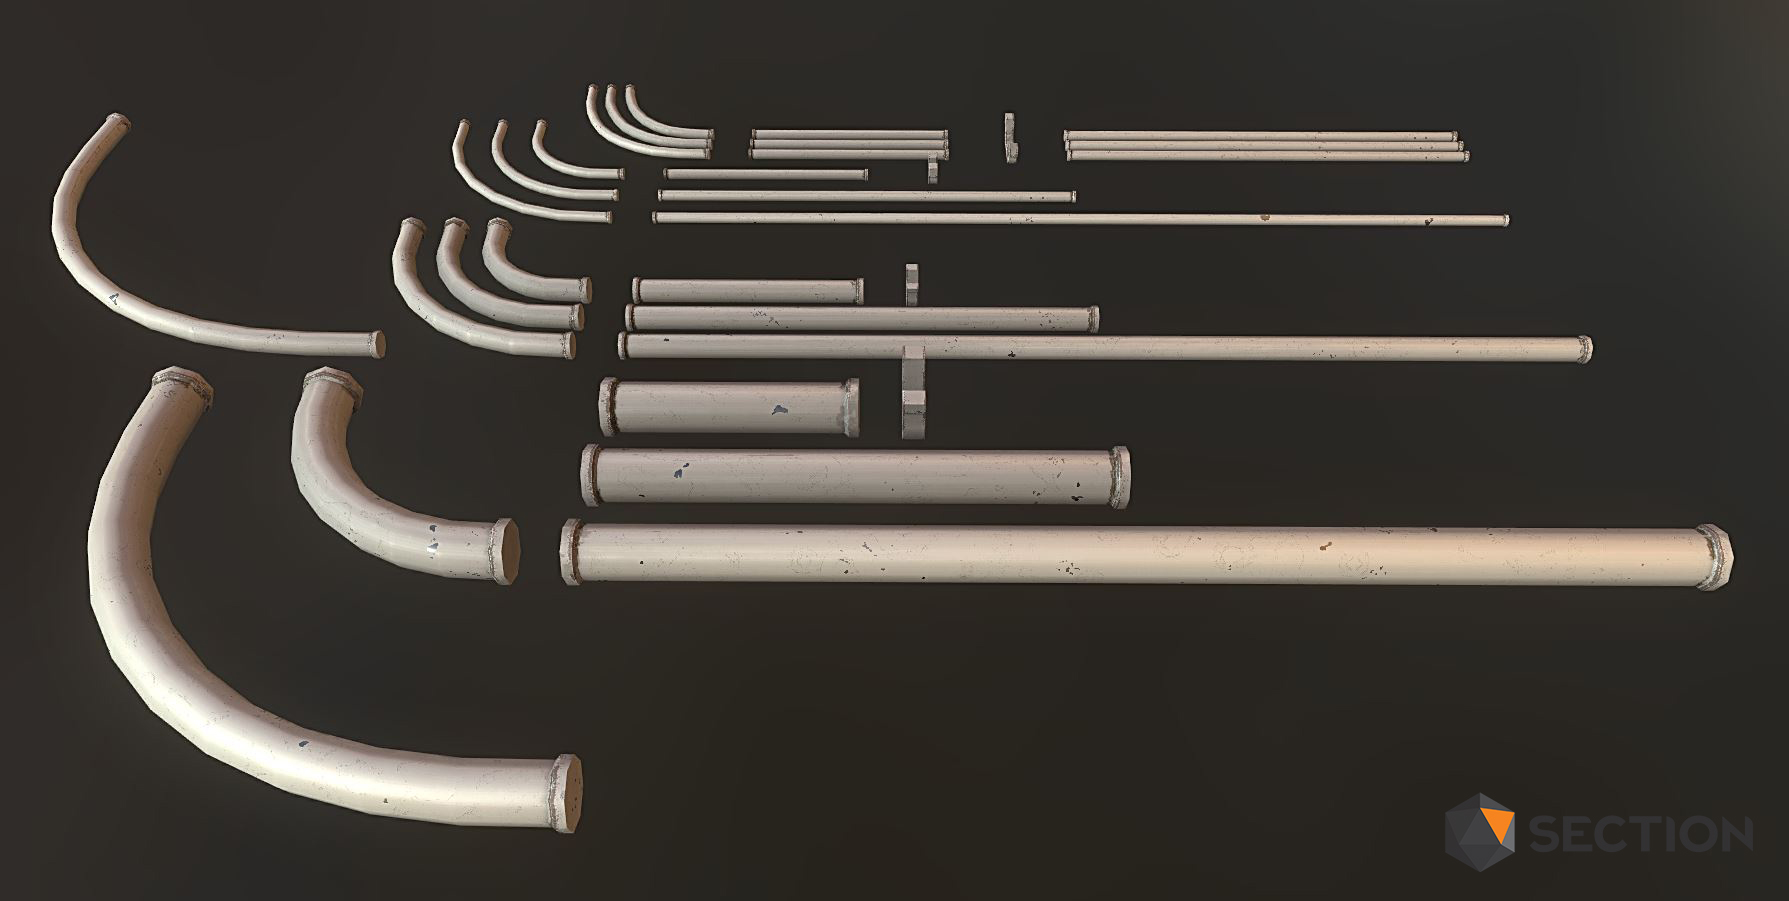 Generic pipe kit I modeled and texture for Alone in the Dark: Illumination.